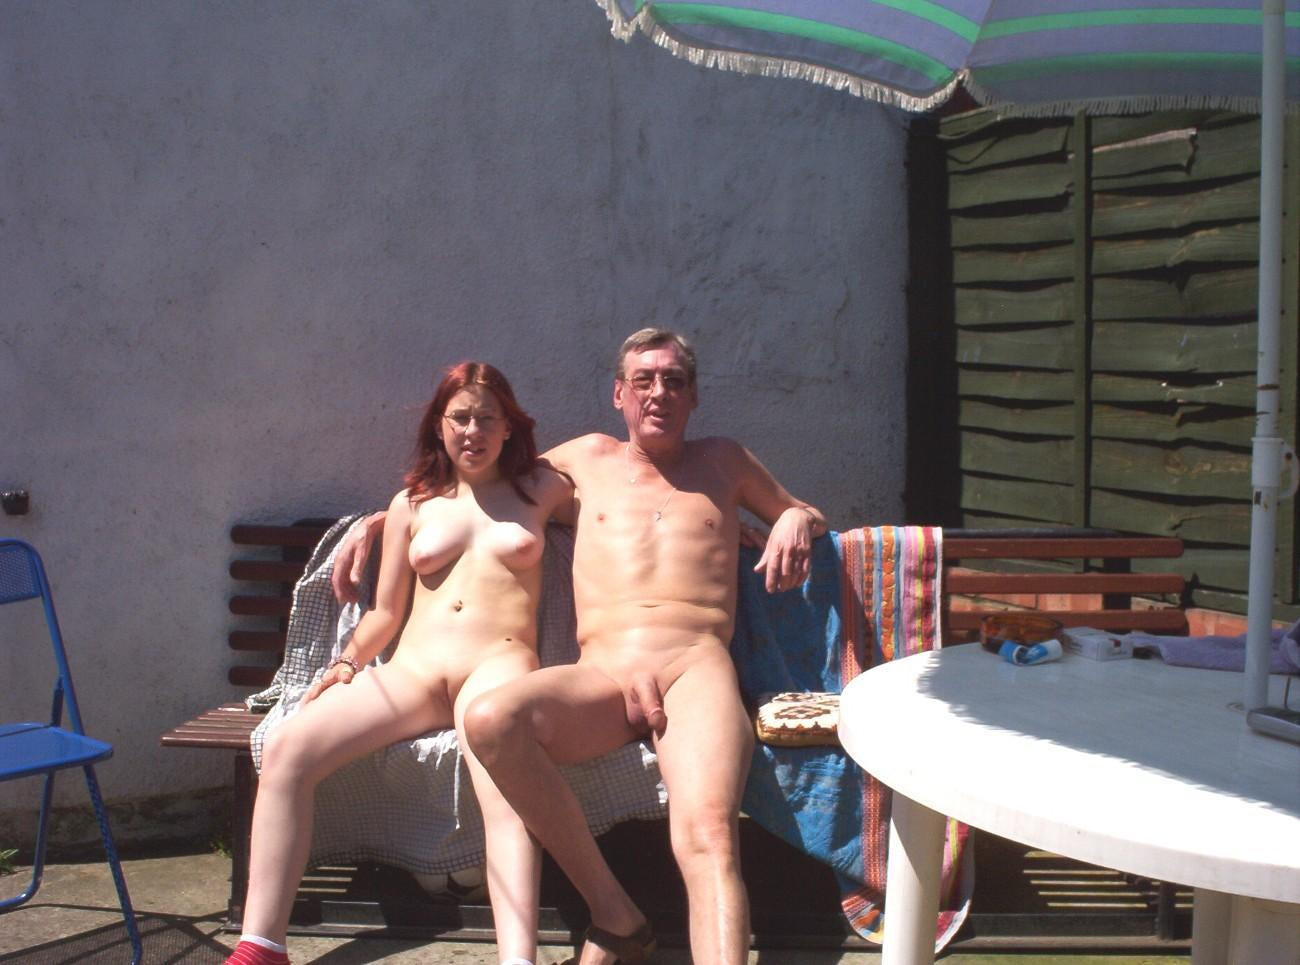 Nudist 1 family fun